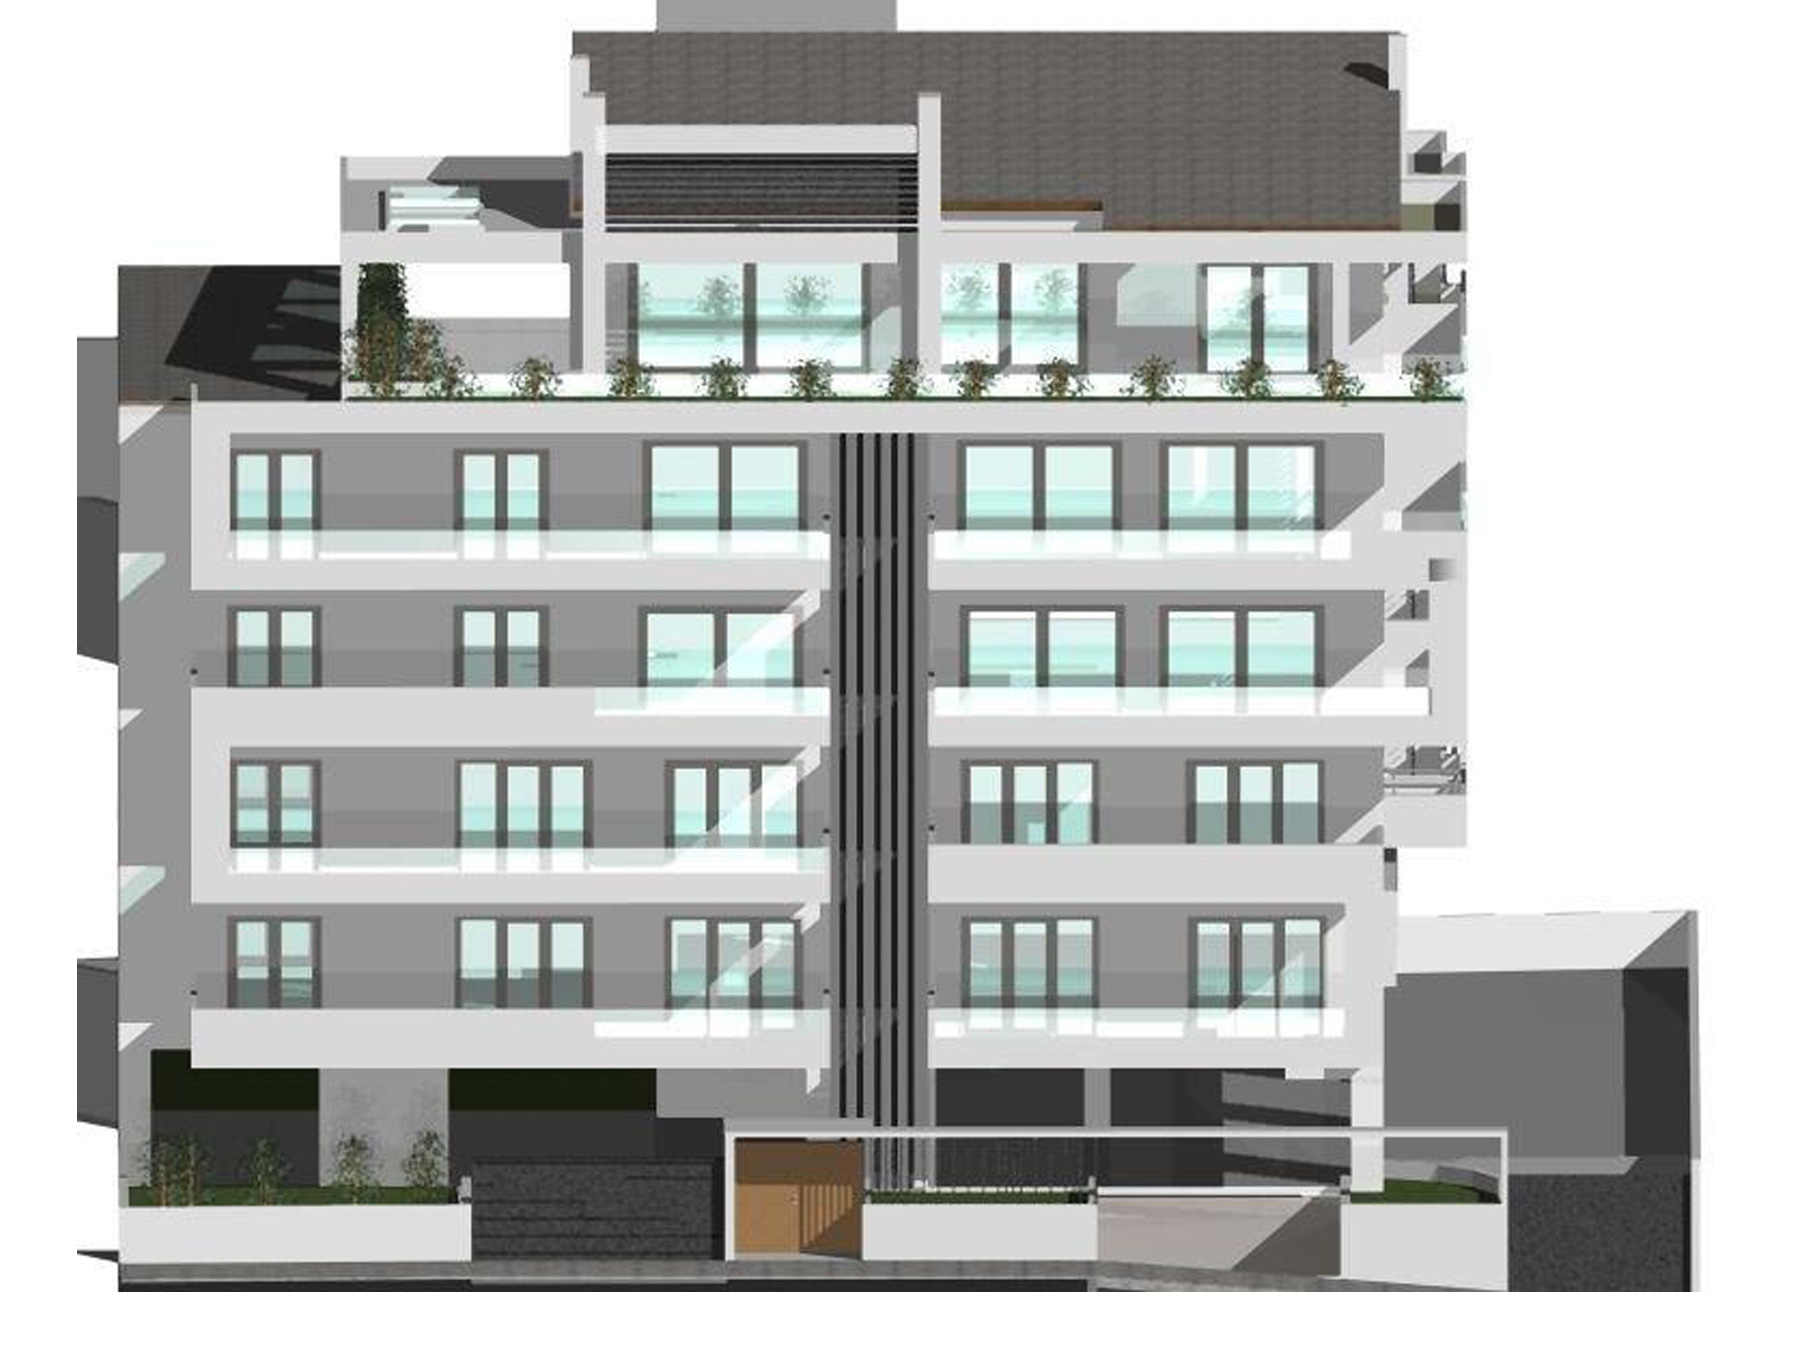 For sale under construction 3 bedroom apartment 132 sq.m. 4th floor with parking and storage in the center of Ioannina